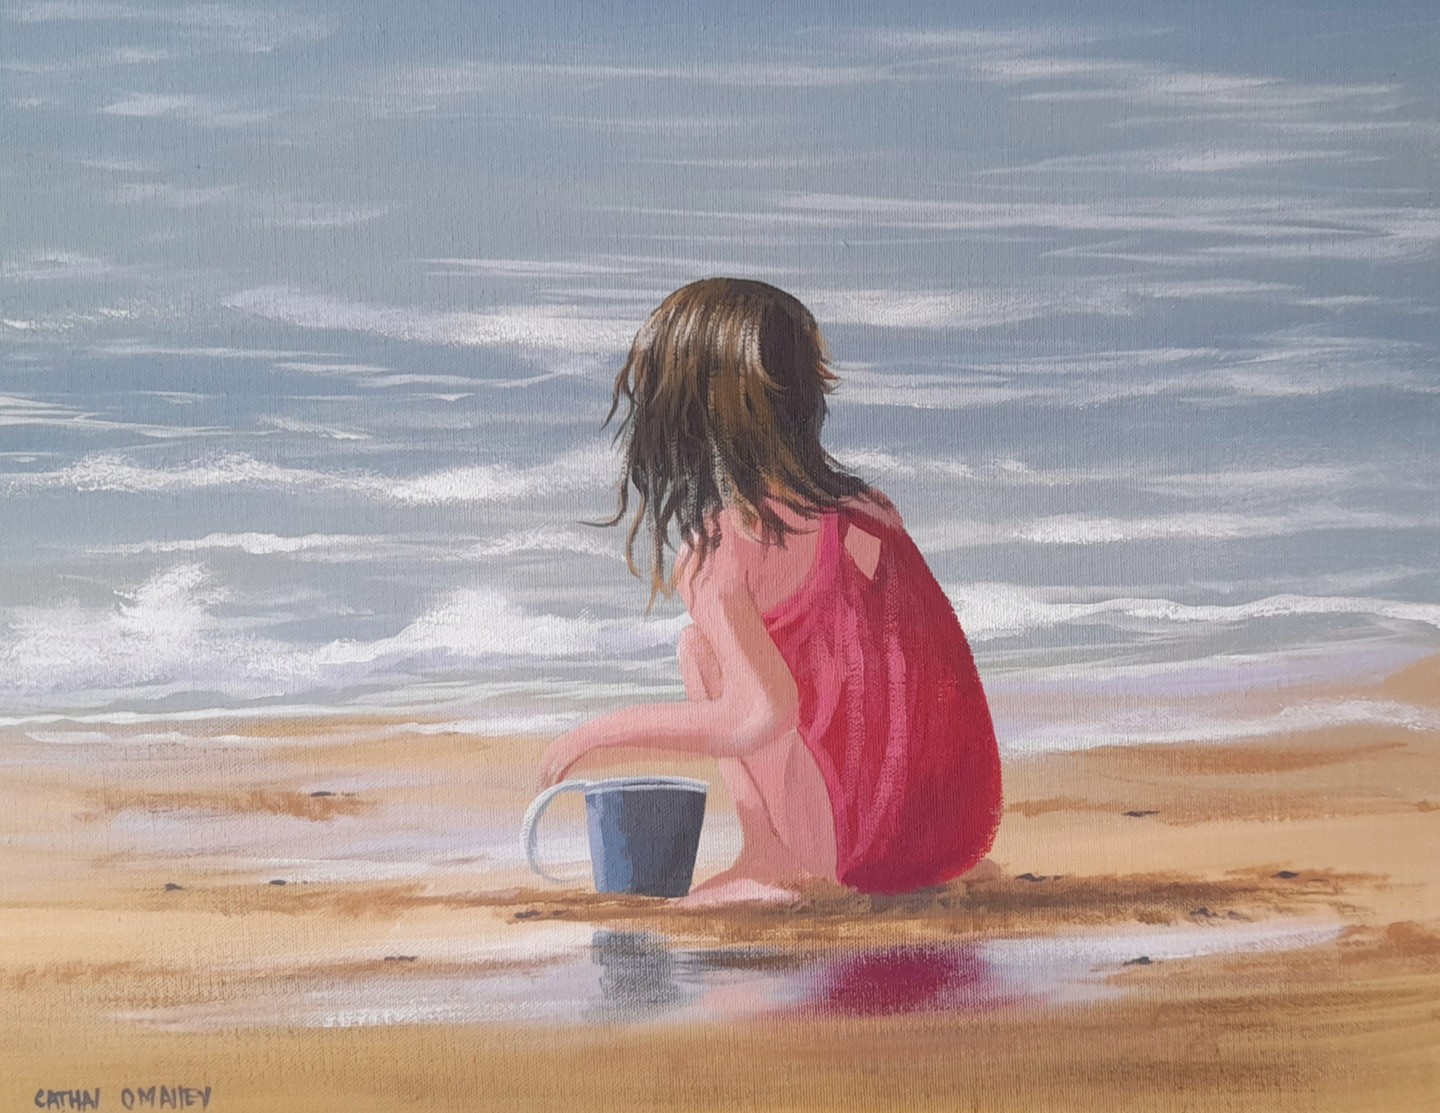 Cathal O Malley - By the beach